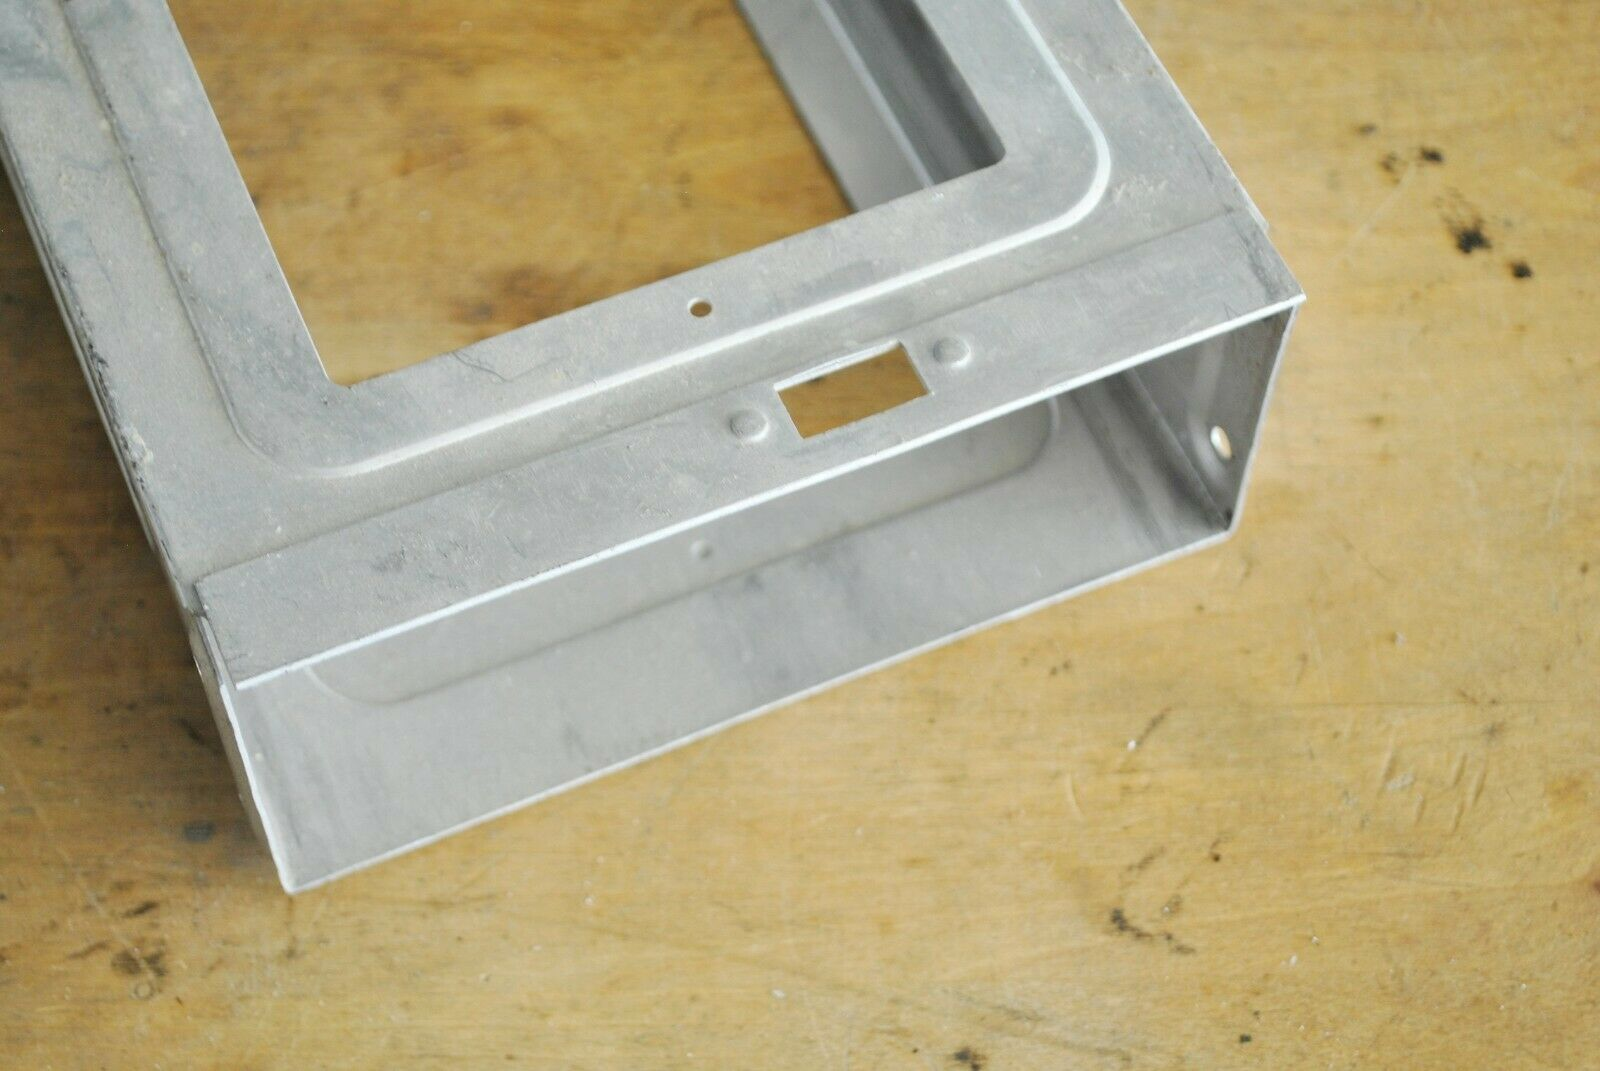 Bendix King KX-170B/175B Mounting Tray / Rack